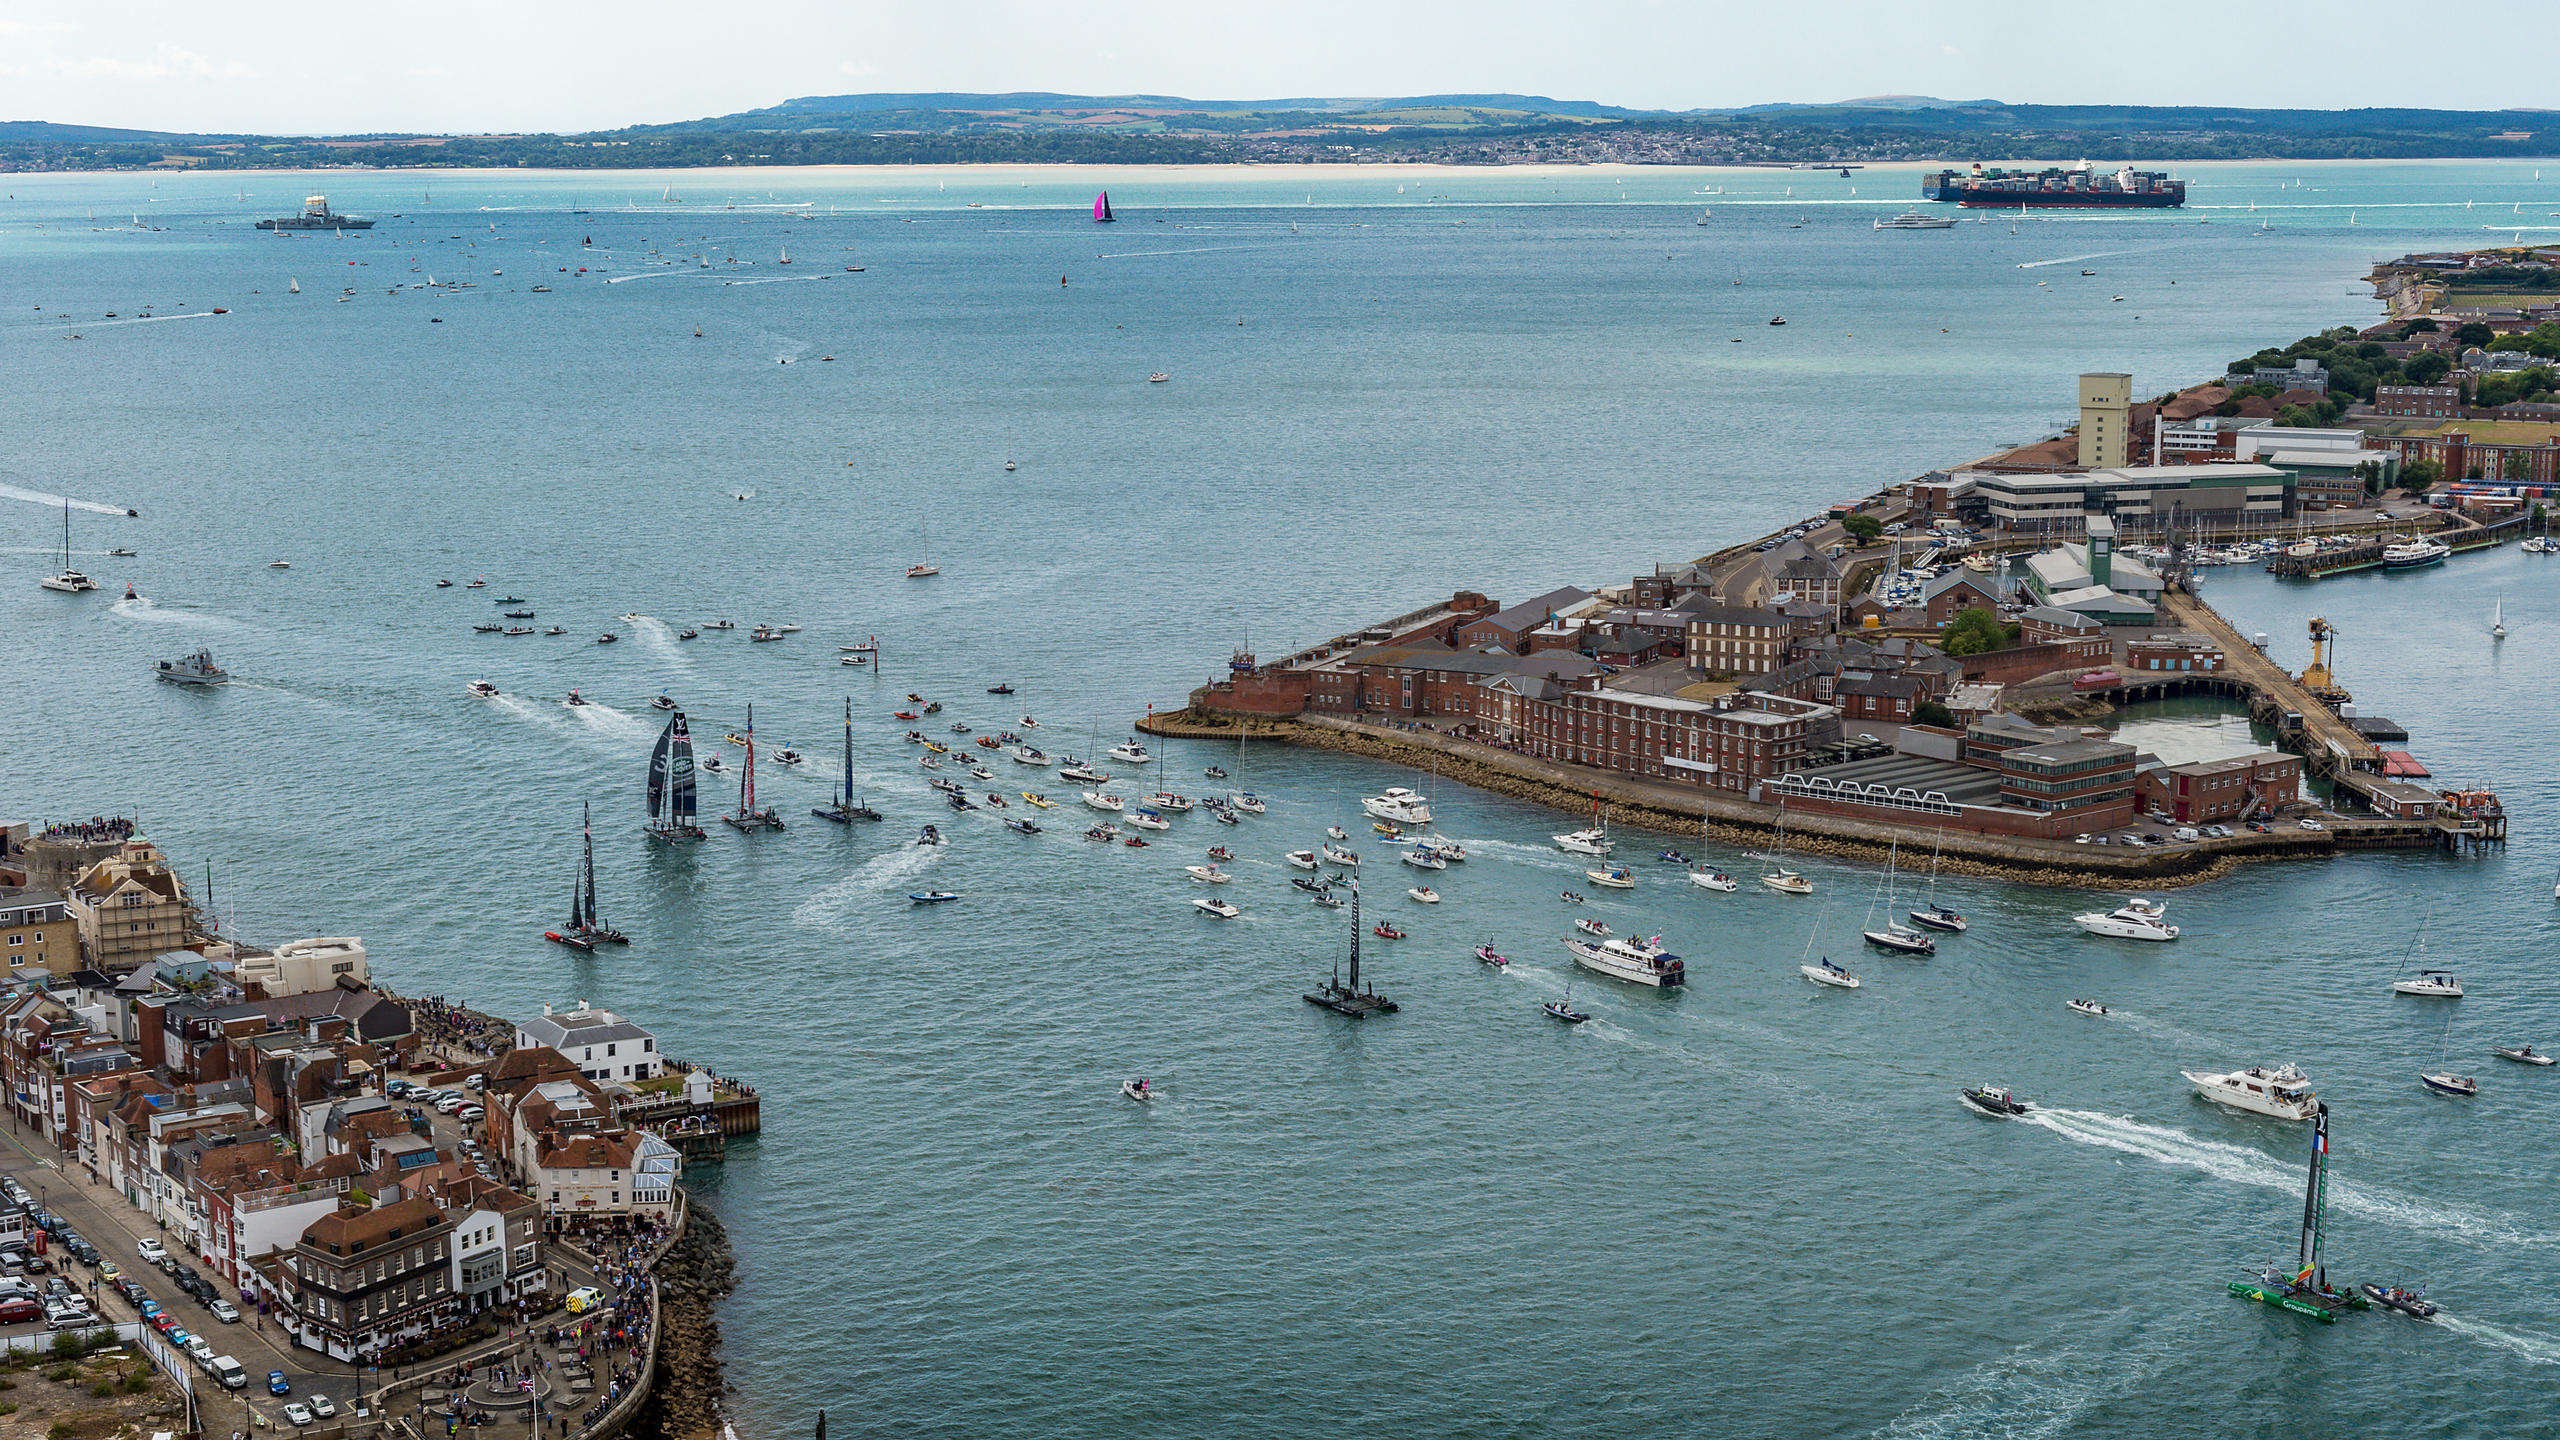 America's Cup Portsmouth 2015